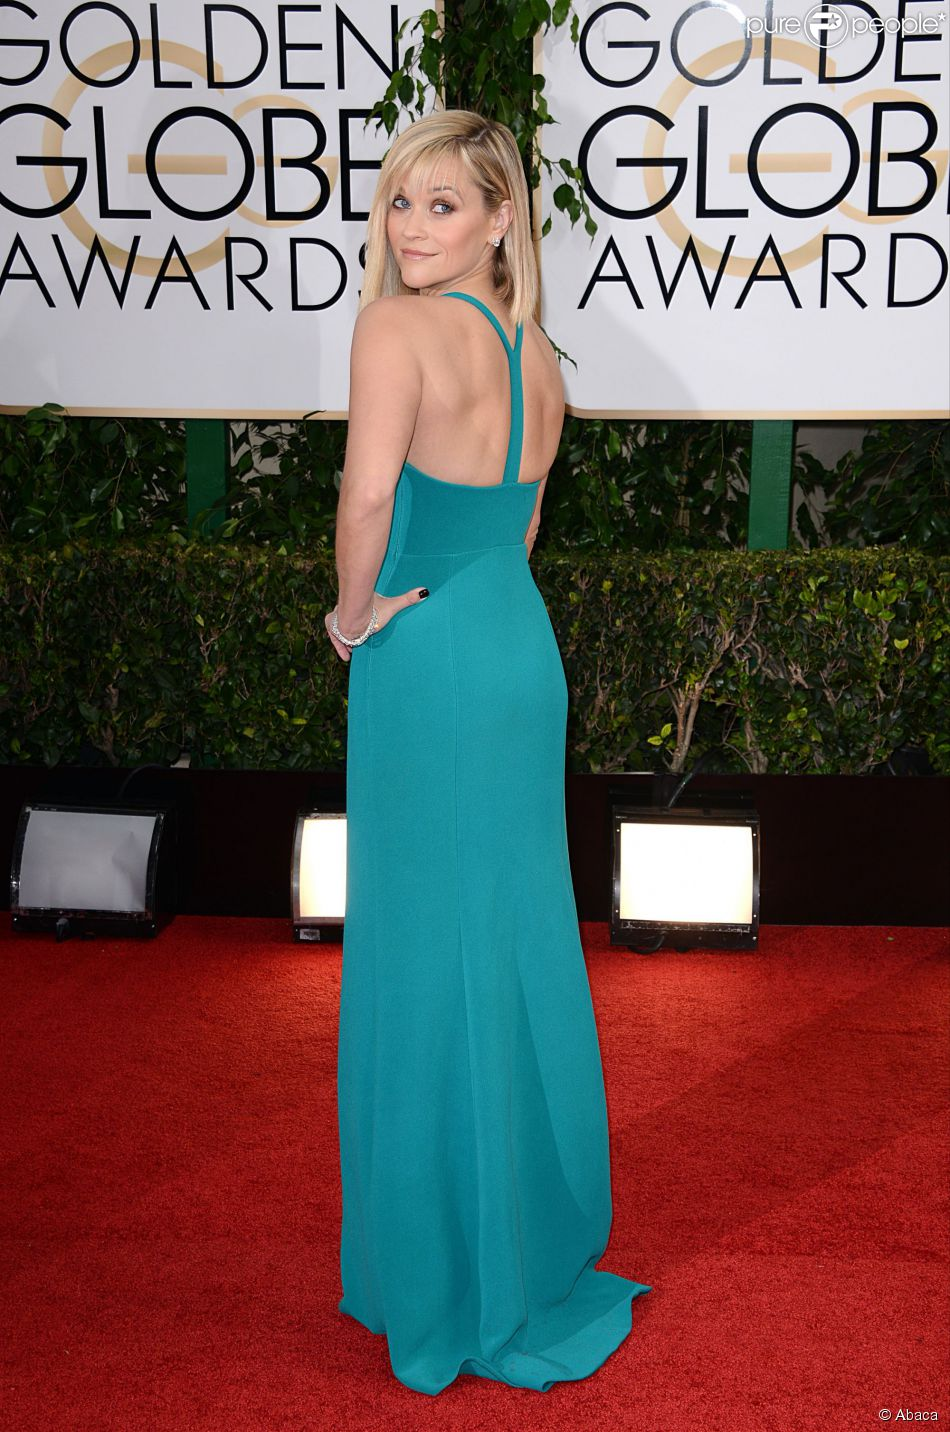 Reese Witherspoon ose la frange sur tapis rouge pour un look glamour